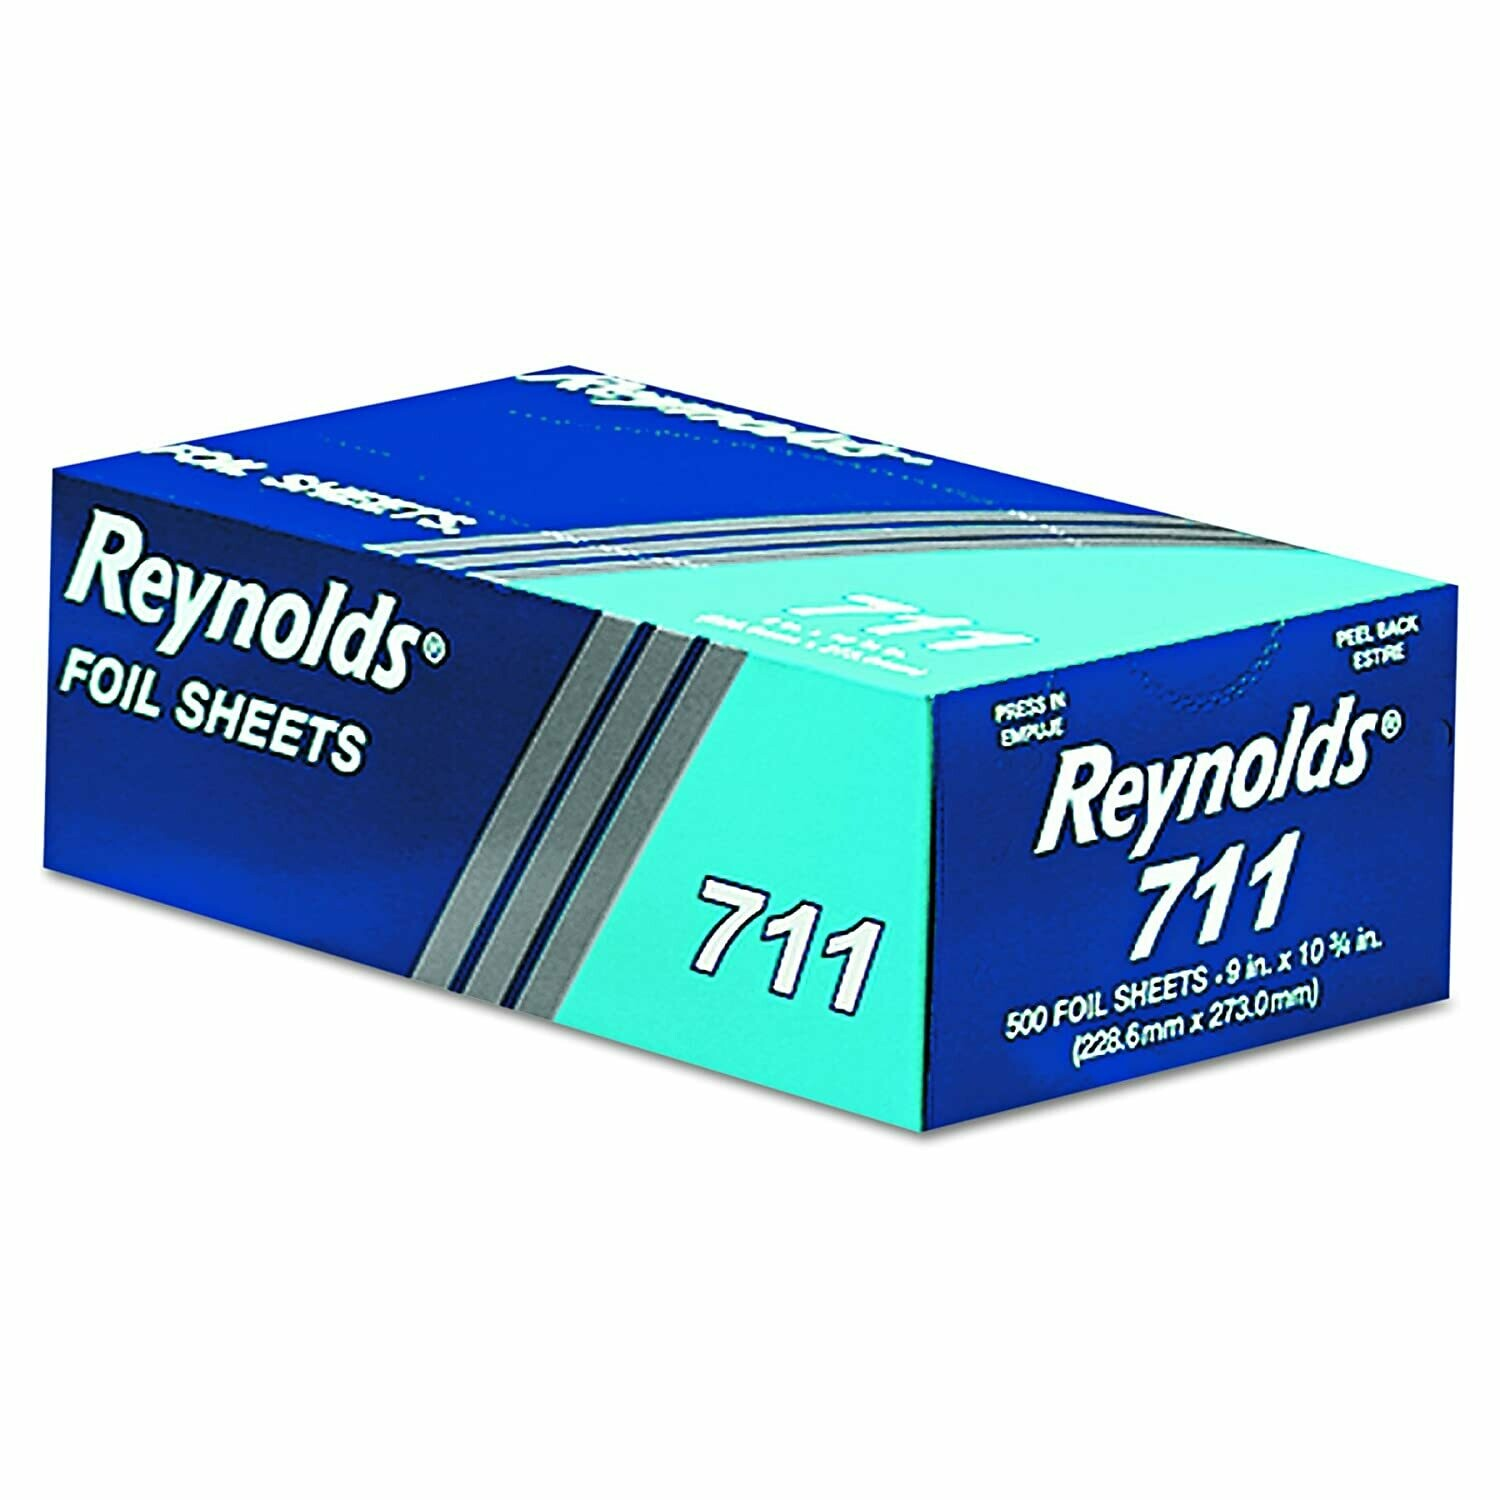 * Reynolds Foil Sheets, 9X10 500 Count